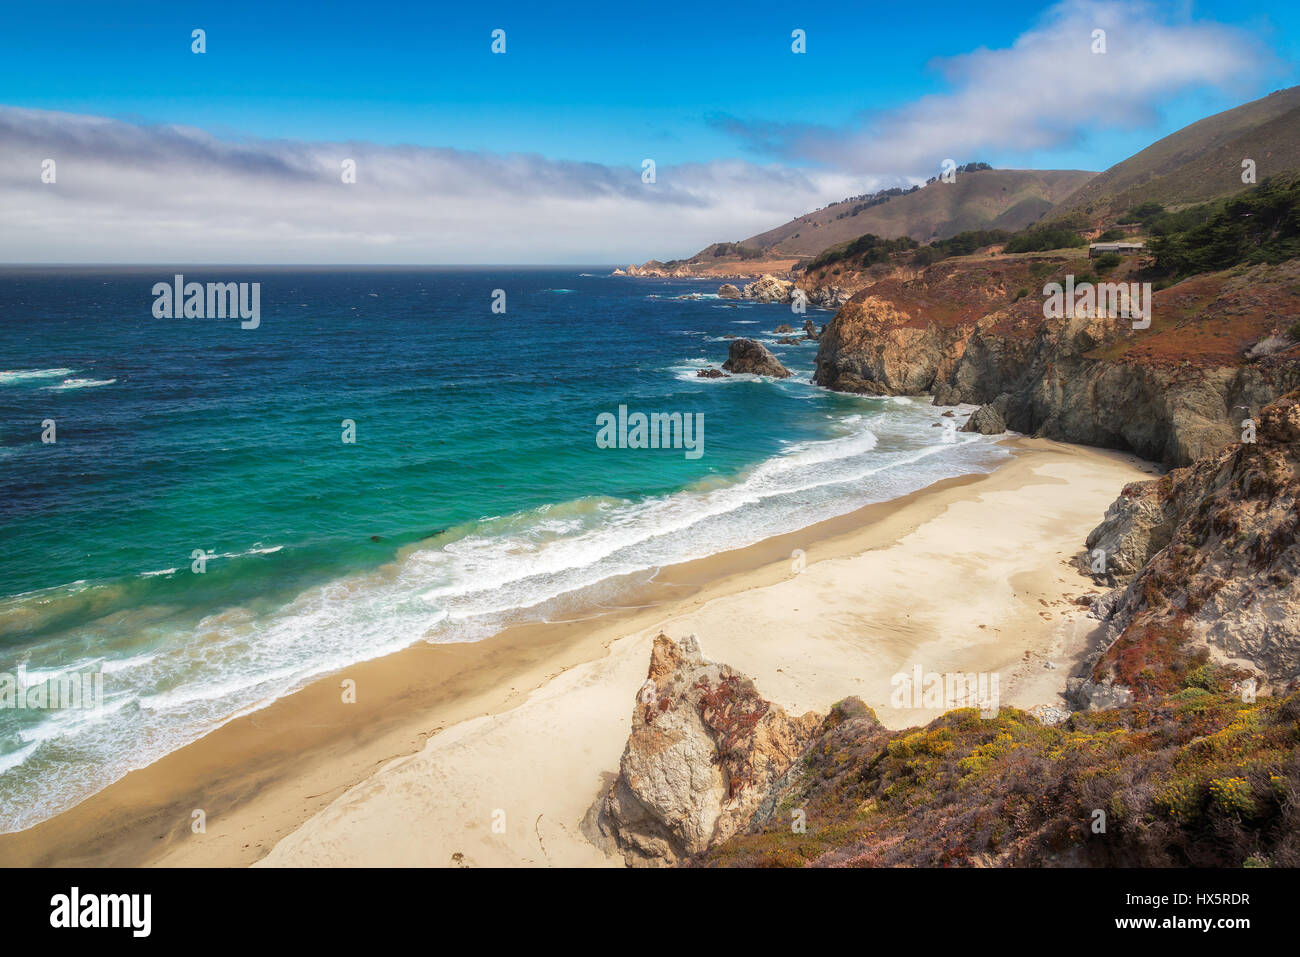 5d2975adccb6 Pacifico Immagini   Pacifico Fotos Stock - Alamy